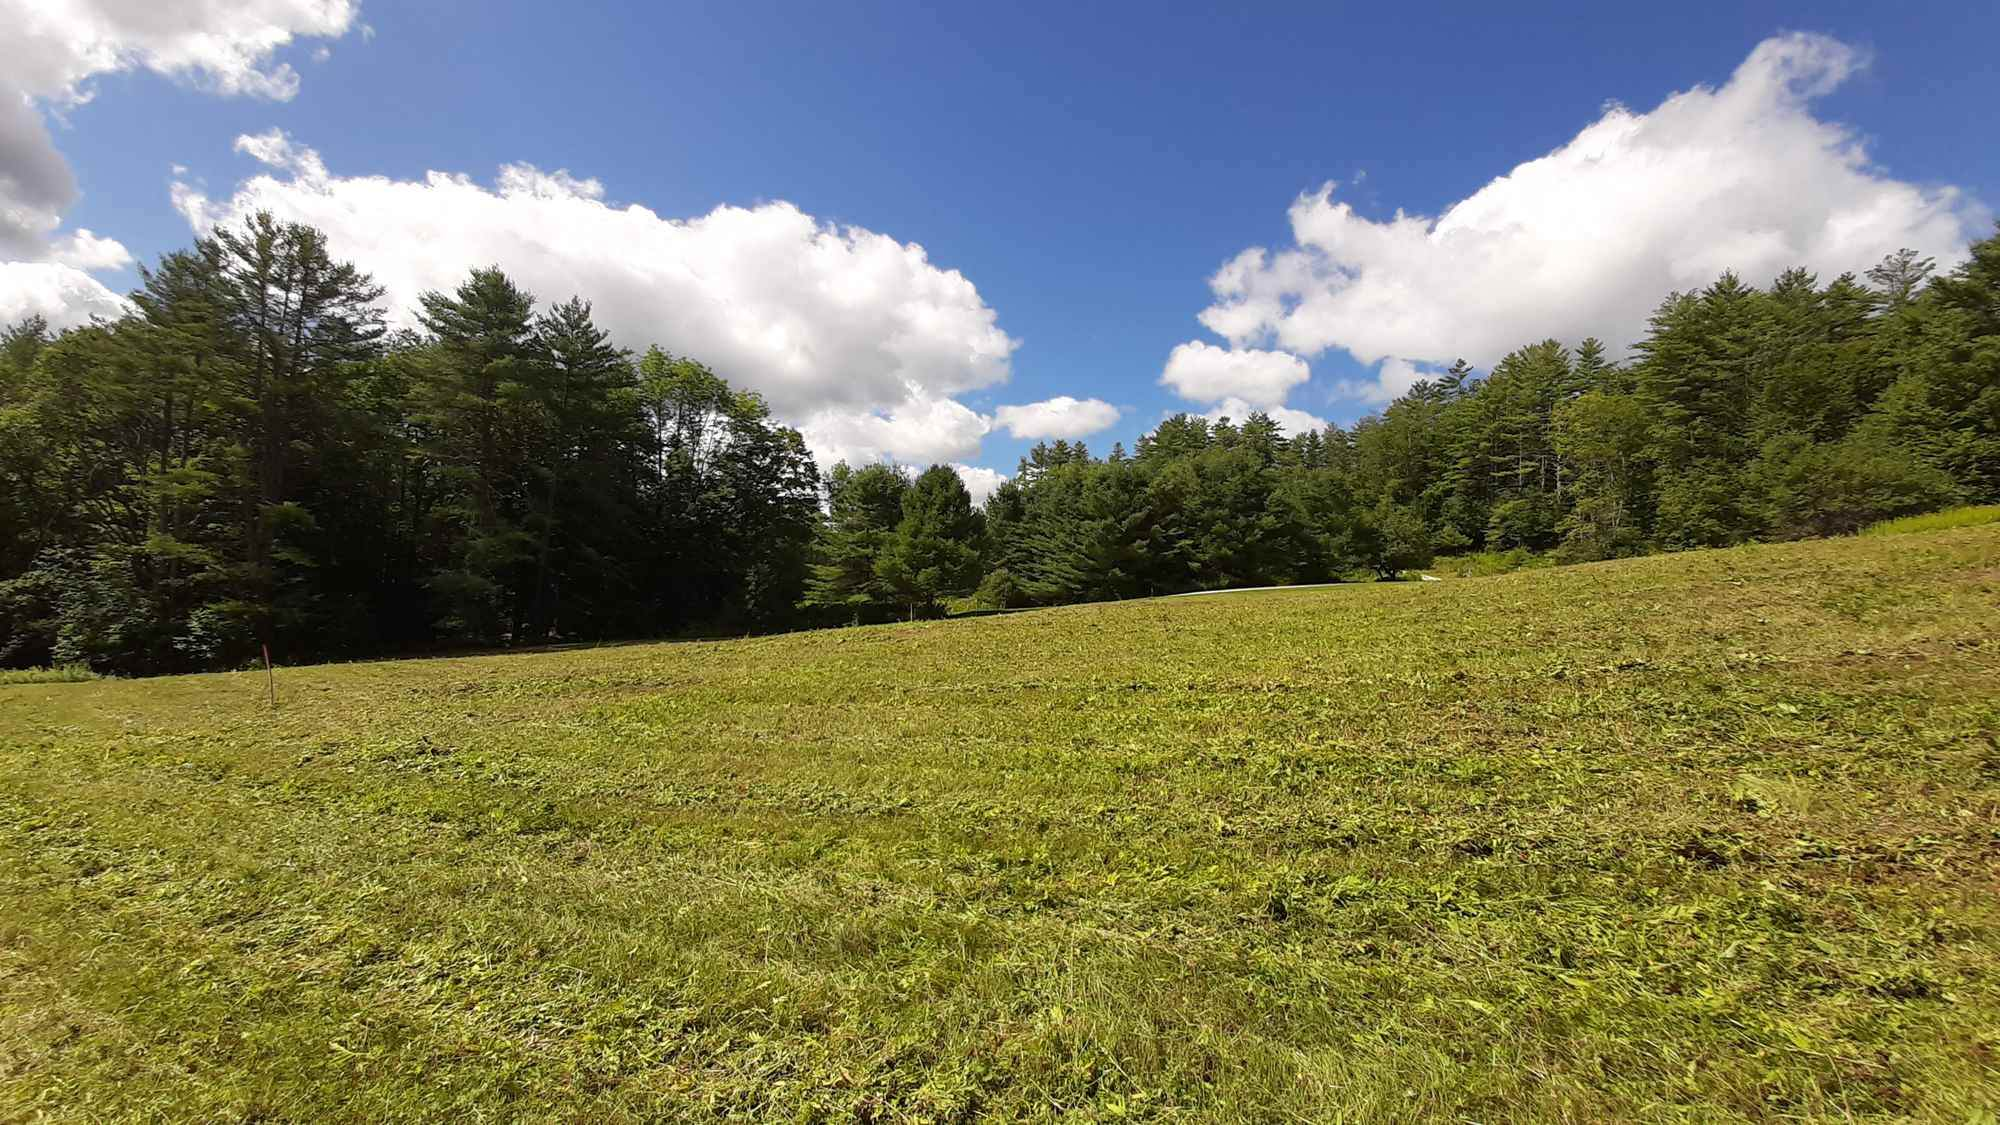 00 Preedom Hill Road #6, Ludlow, VT 05149 (MLS #4821510) :: Hergenrother Realty Group Vermont